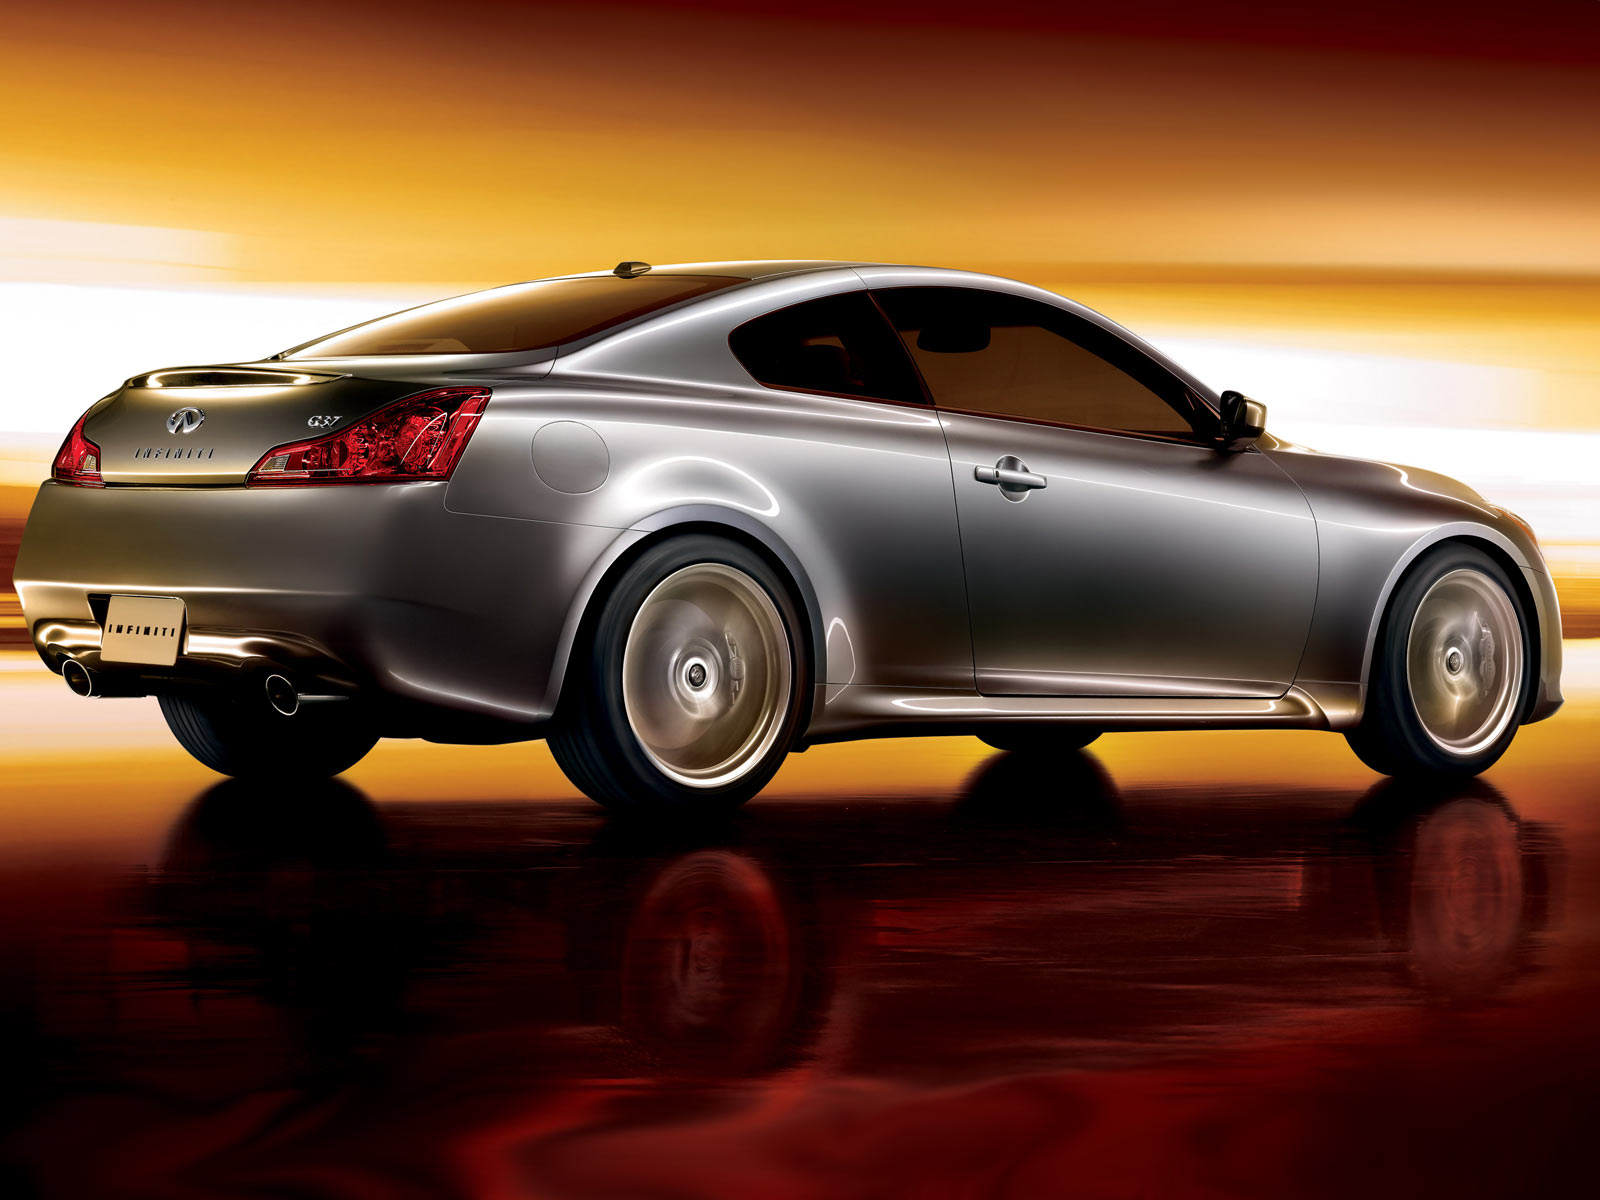 Infiniti G37 Rear Wallpapers Infiniti G37 Rear Stock Photos